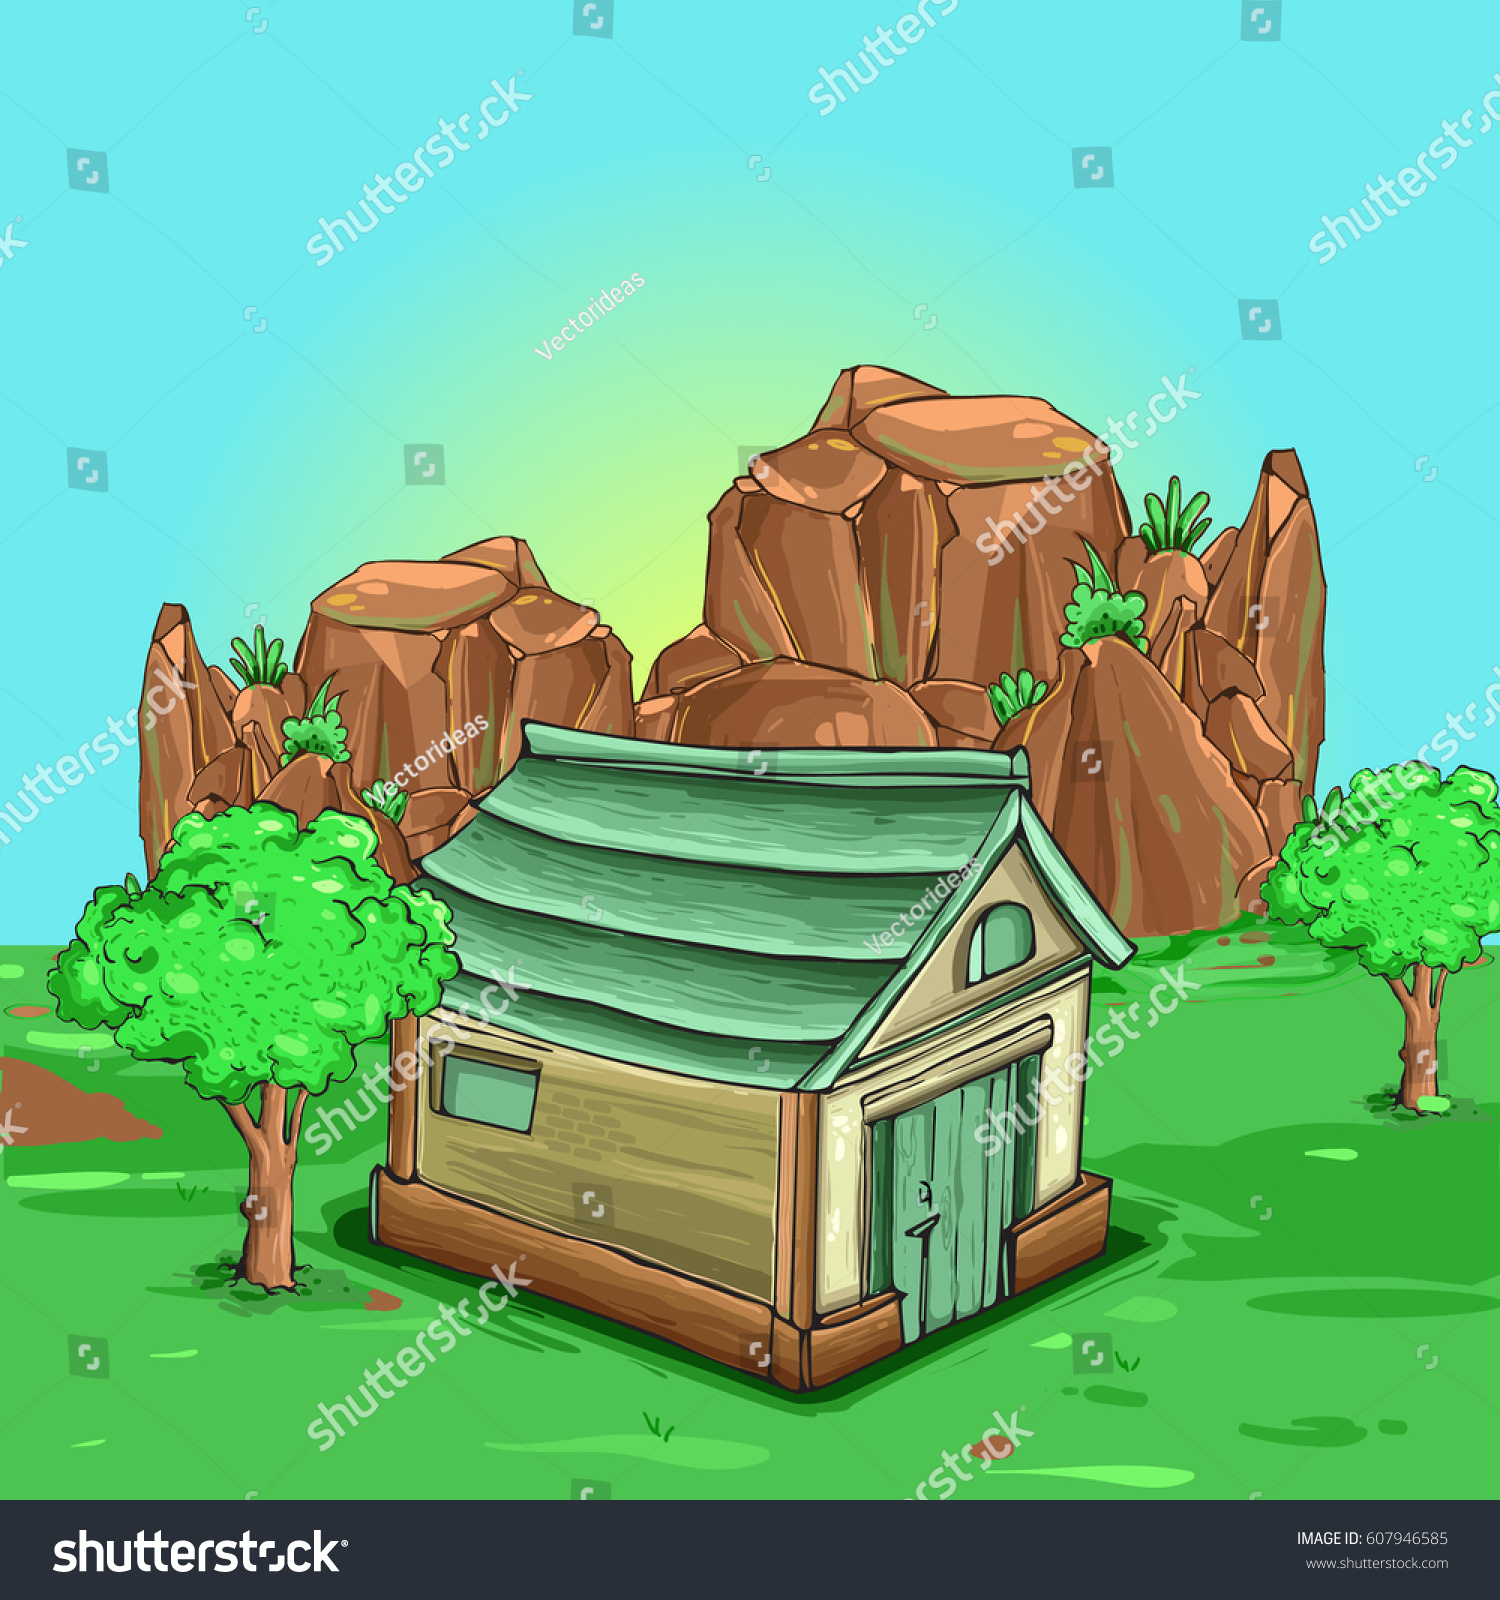 Illustration of a cartoon house inside green fields and tree cliff